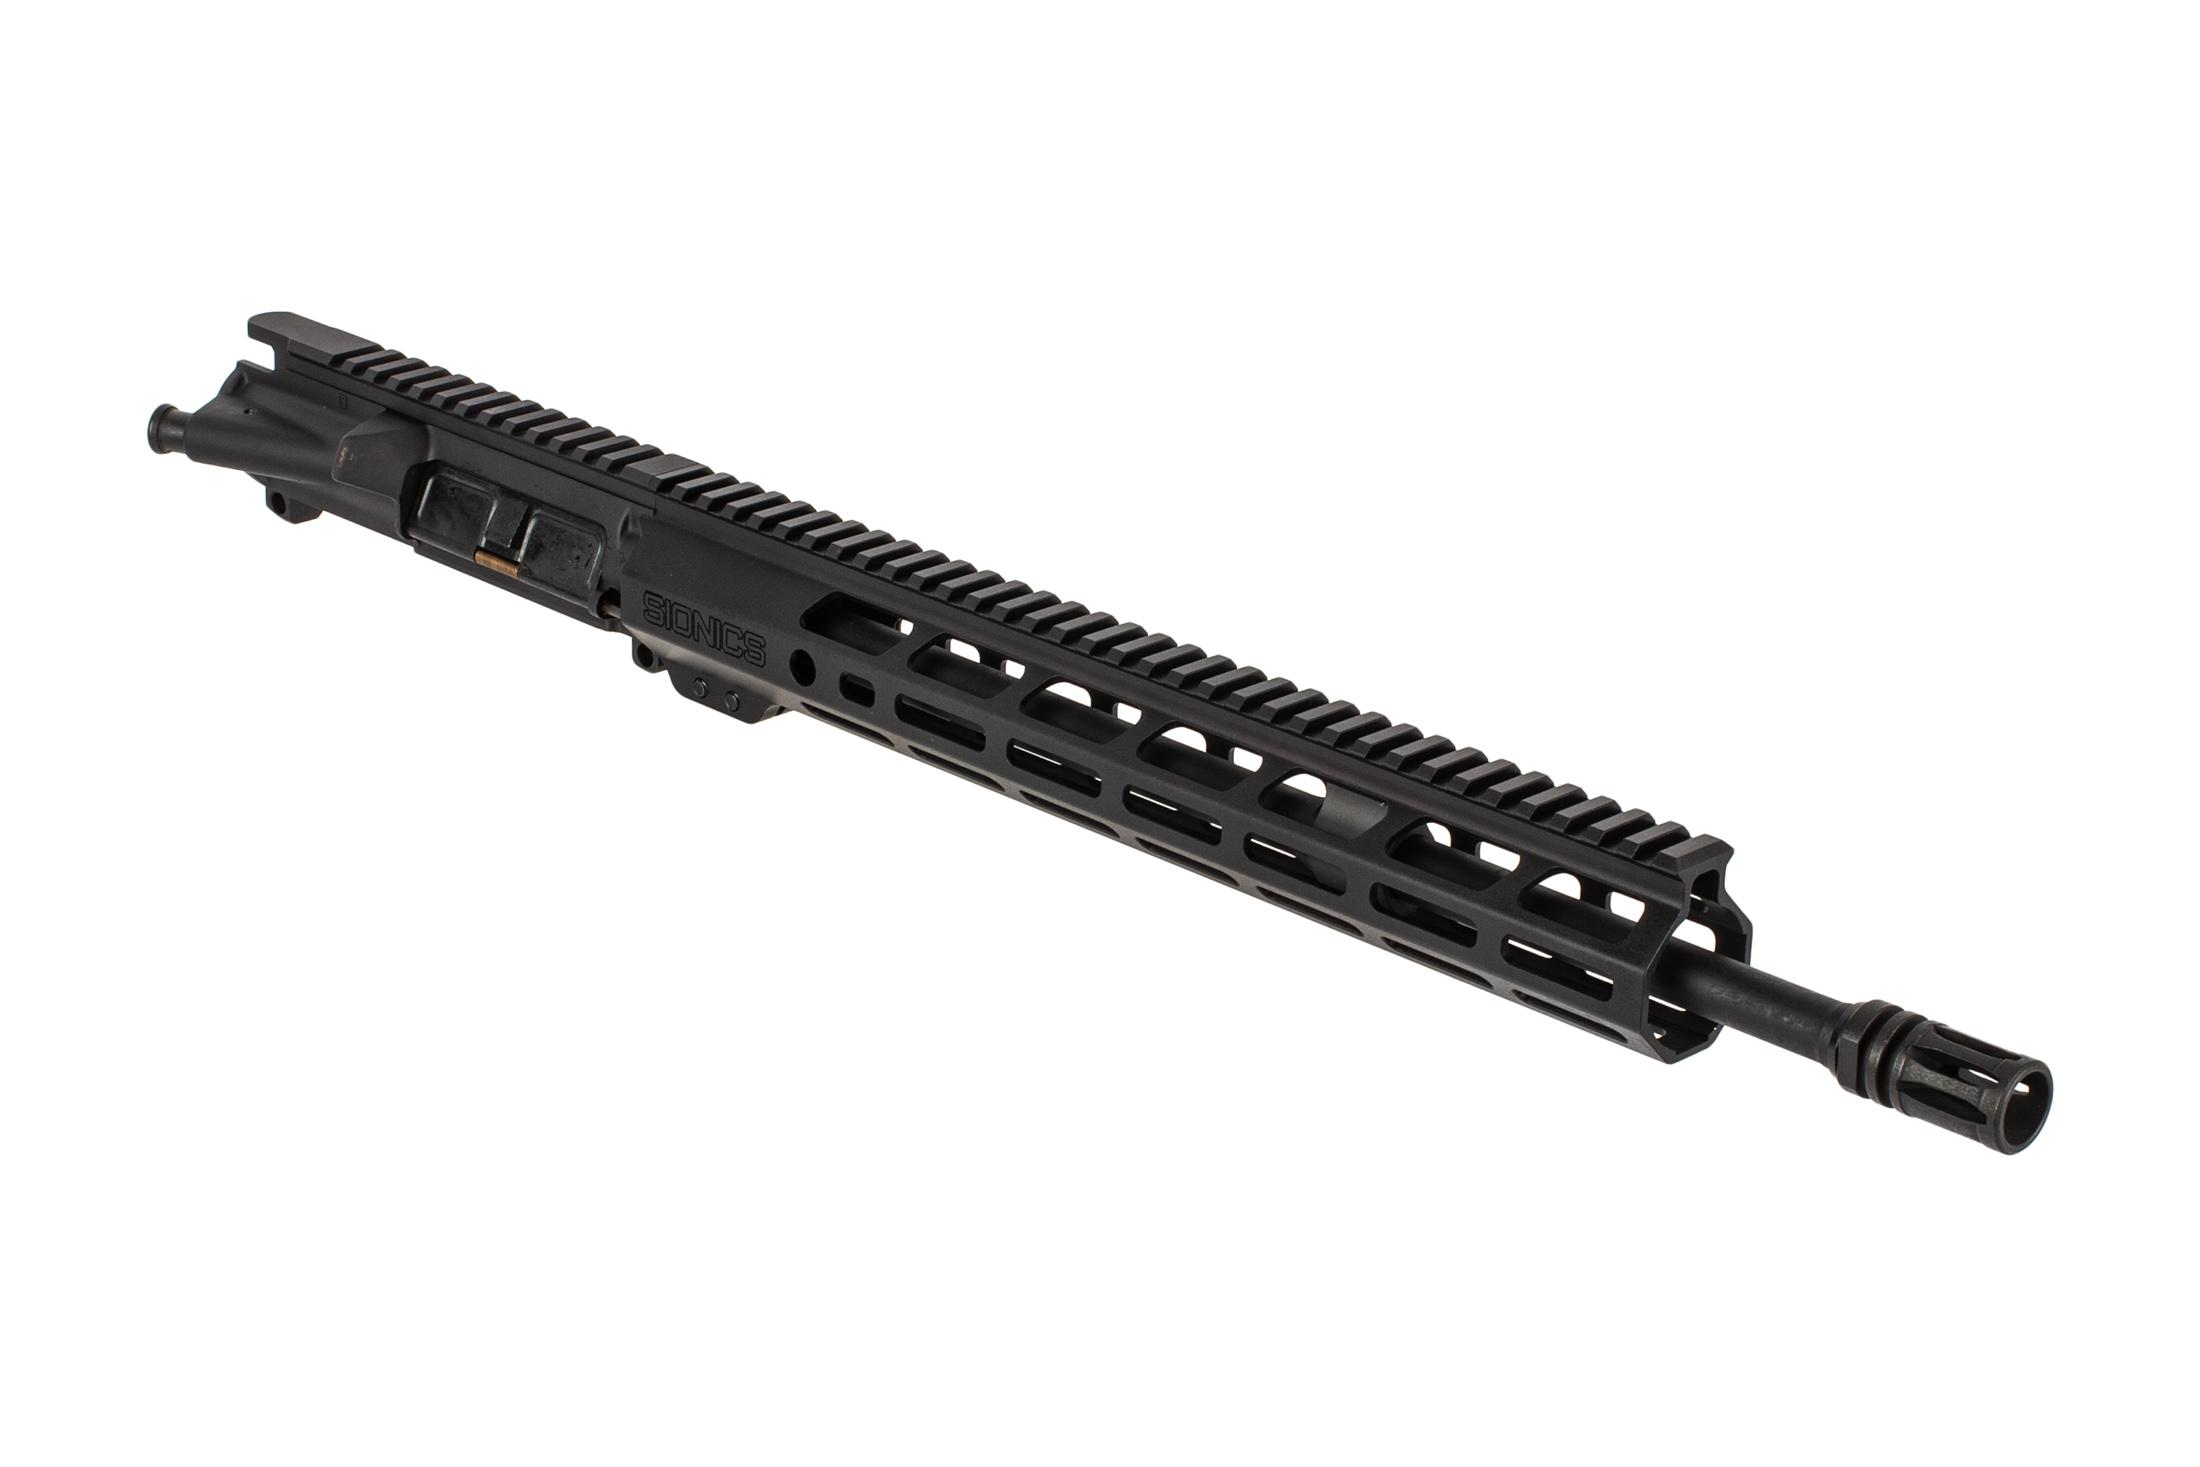 Sionics Weapon Systems Patrol III lightweight barreled ar15 upper receiver features a pencil barrel